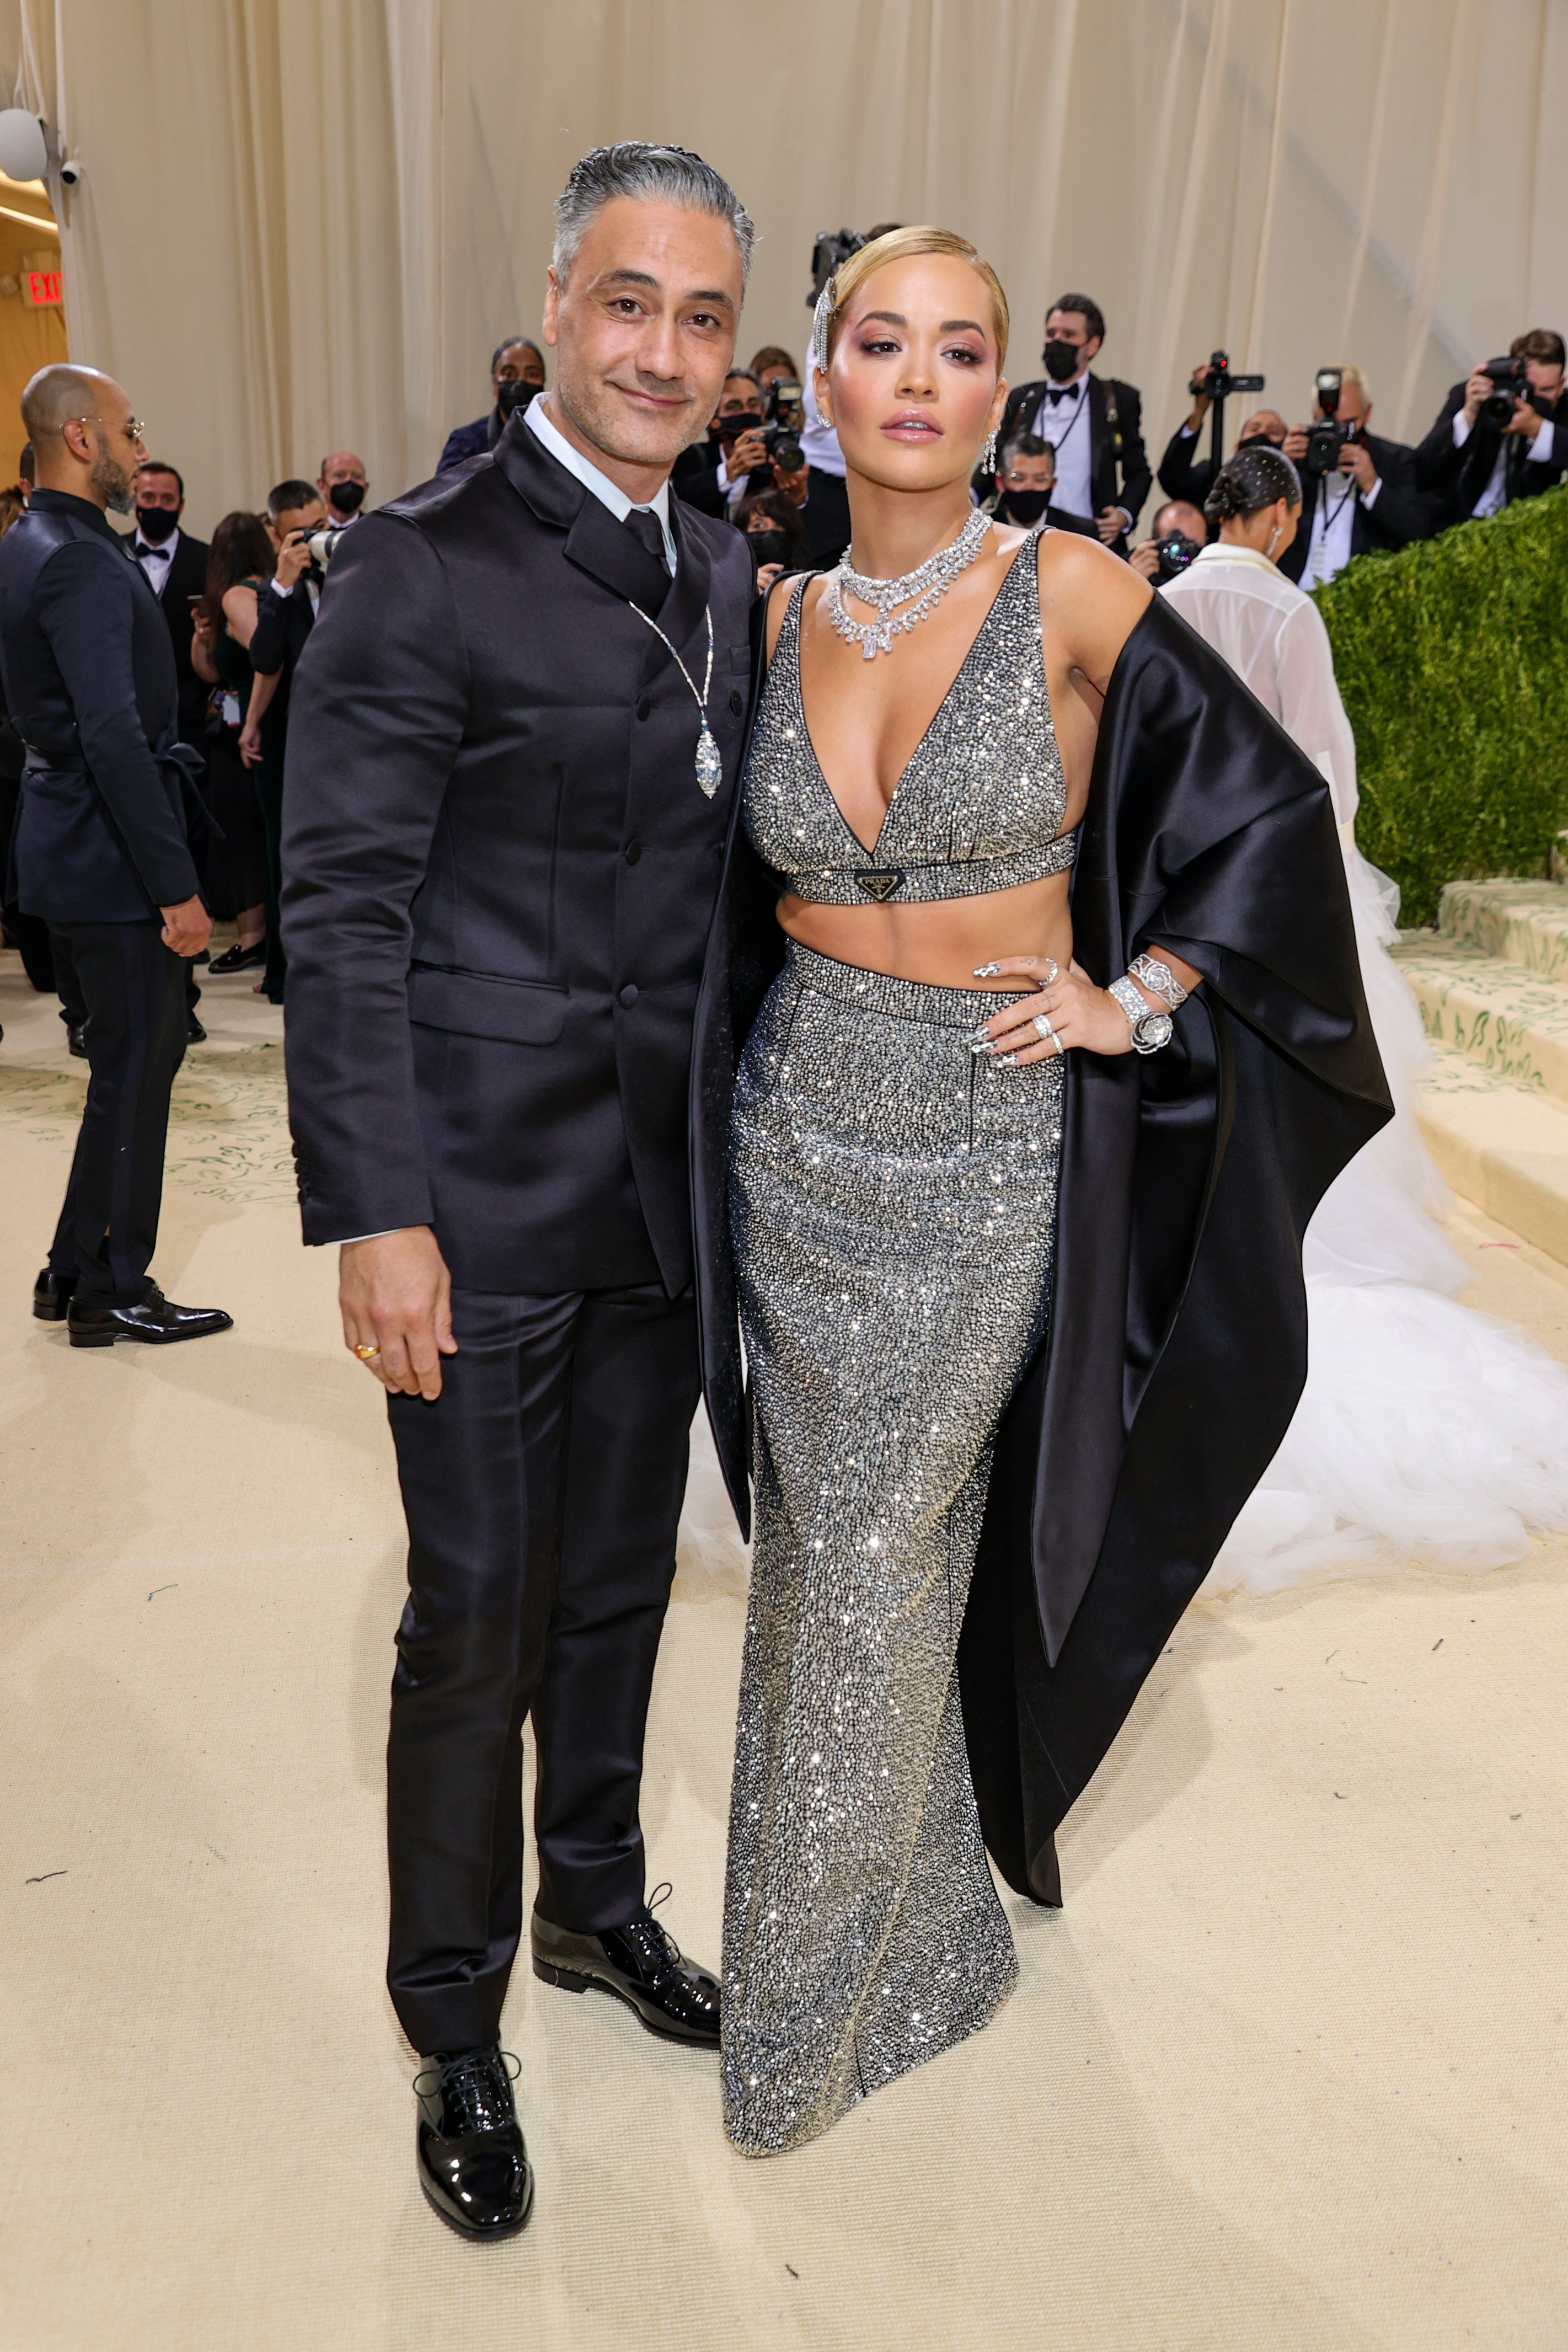 NEW YORK, NEW YORK - SEPTEMBER 13: Taika Waititi and Rita Ora attend The 2021 Met Gala Celebrating In America: A Lexicon Of Fashion at Metropolitan Museum of Art on September 13, 2021 in New York City. (Photo by Theo Wargo/Getty Images) (Foto: Getty Images)